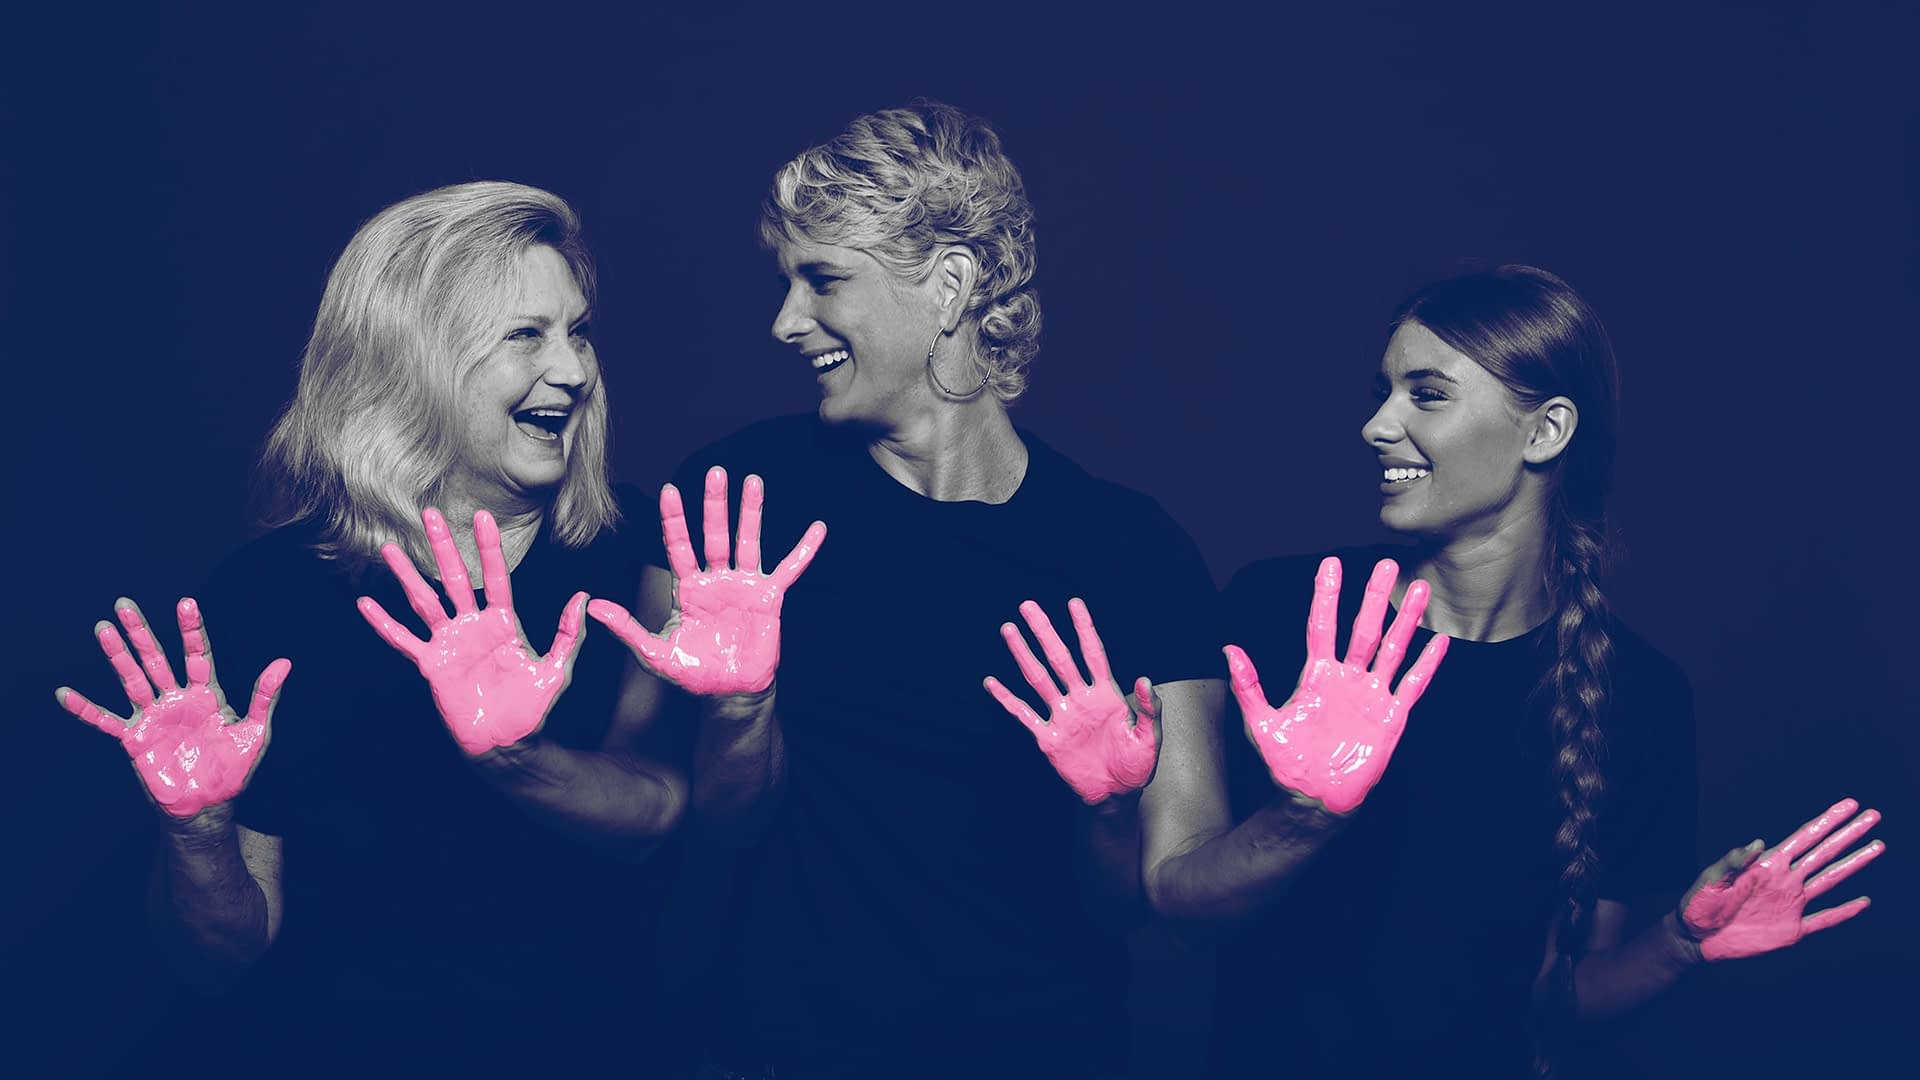 A breast cancer survivor and her family posing for the in our hands campaign with pink paint on their hands. BayCare Hospital Marketing campaign